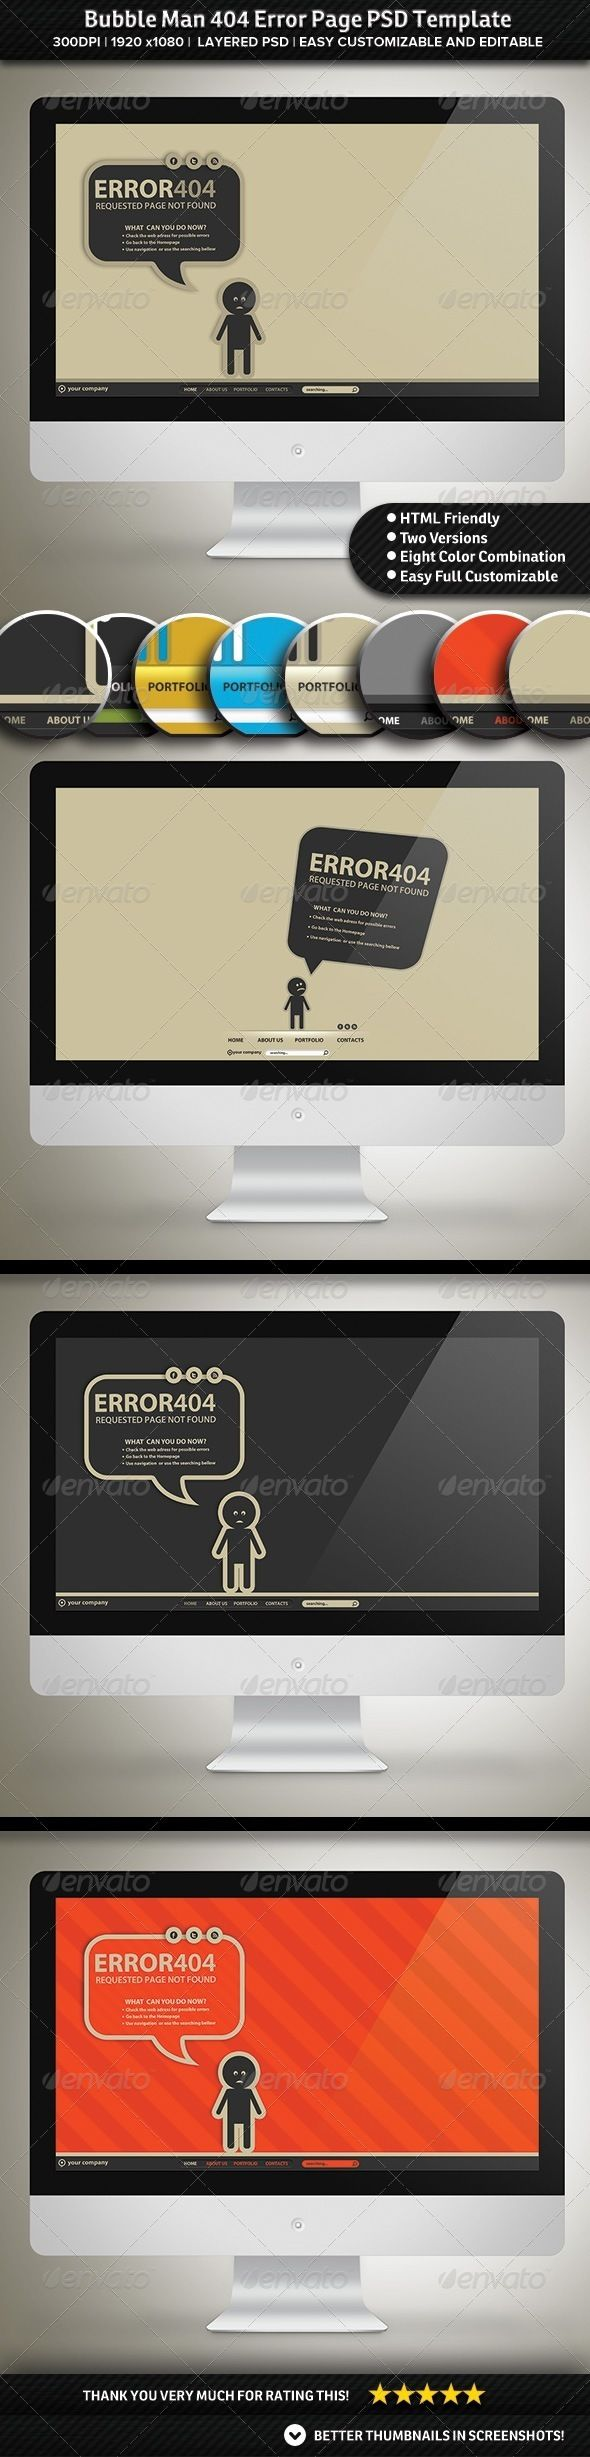 Bubble Man Error Page PSD Template by AddtoFavorites (layered 404 page template)